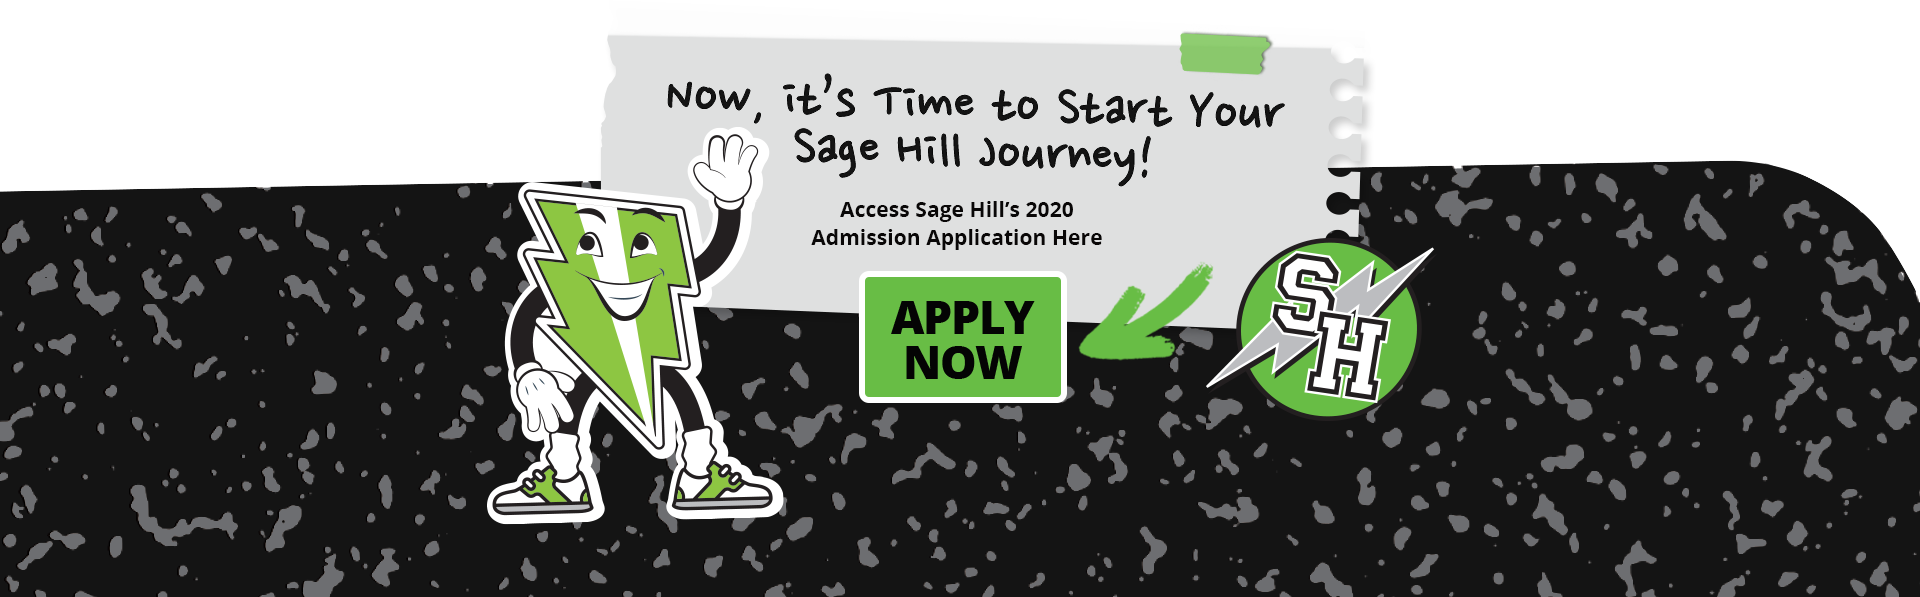 Apply Now to Sage Hill!